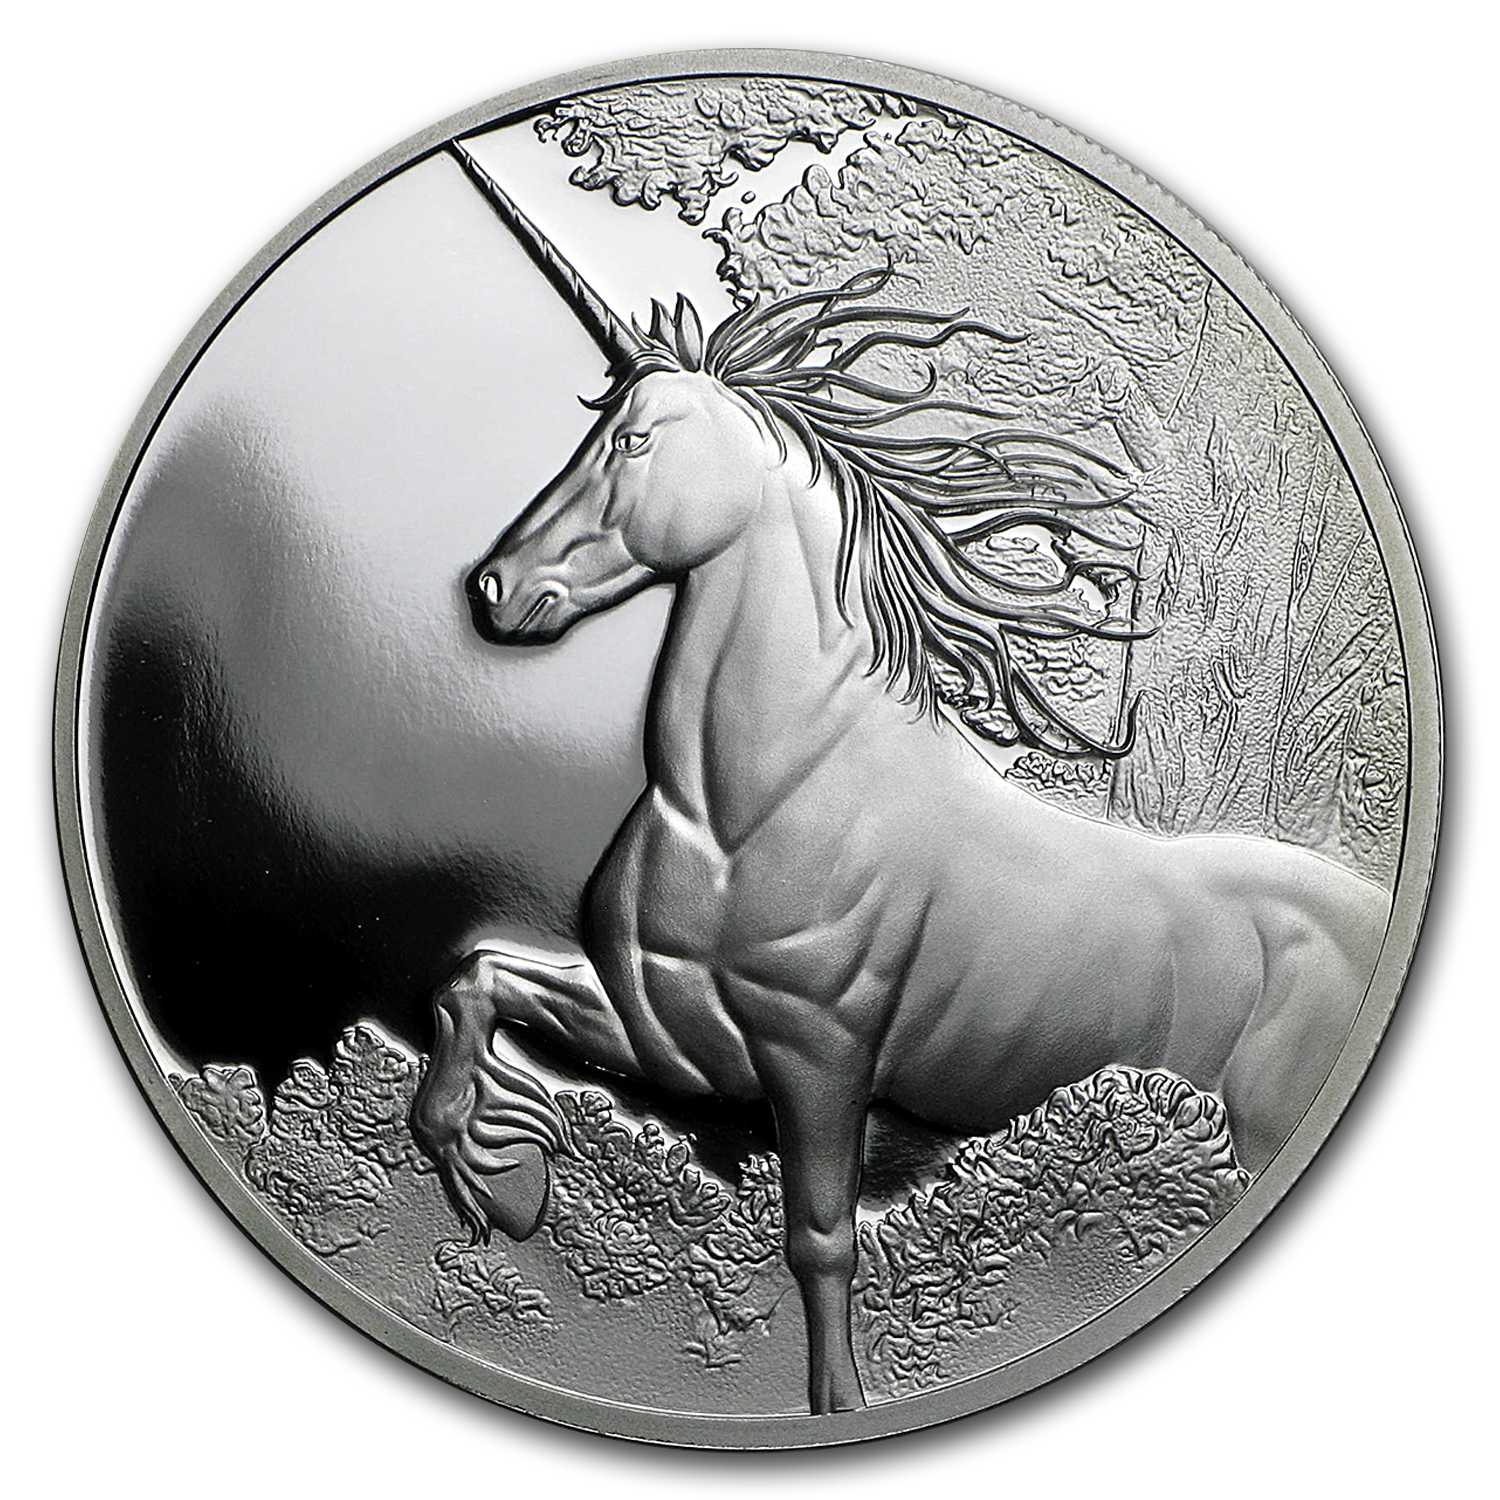 2014 Tokelau 1 oz Silver $5 Unicorn Proof